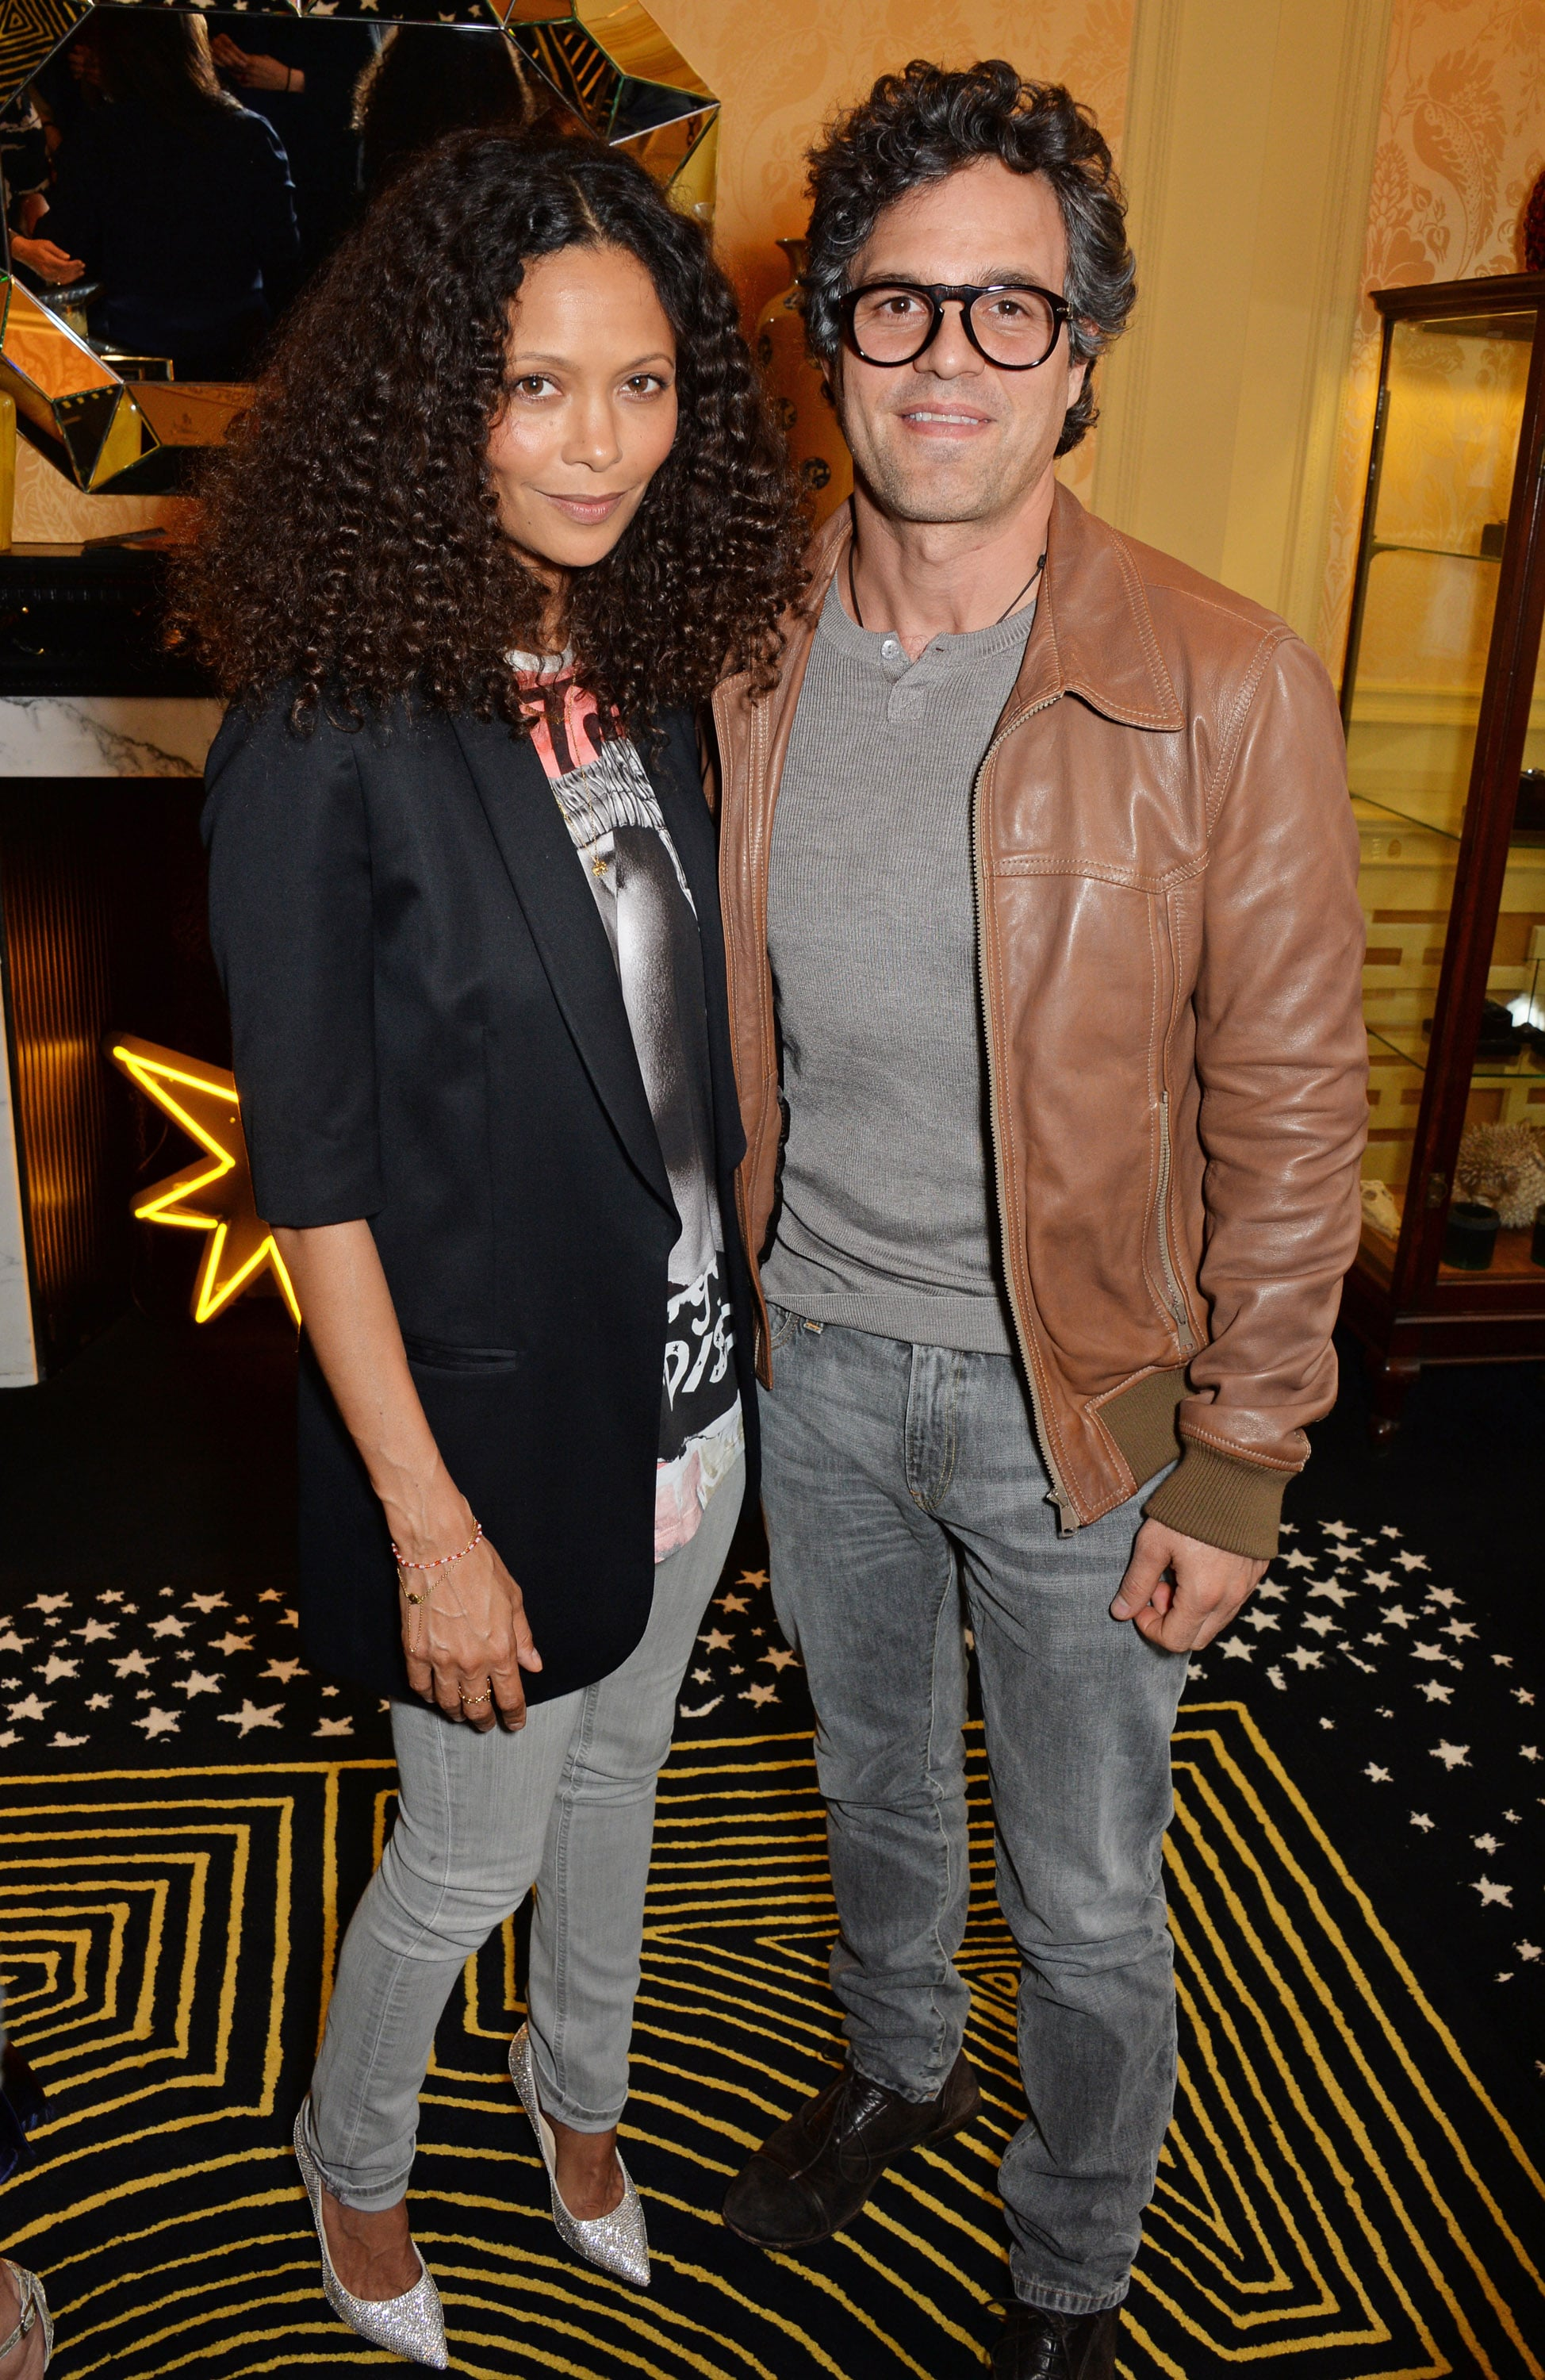 Thandie Newton and Mark Ruffalo